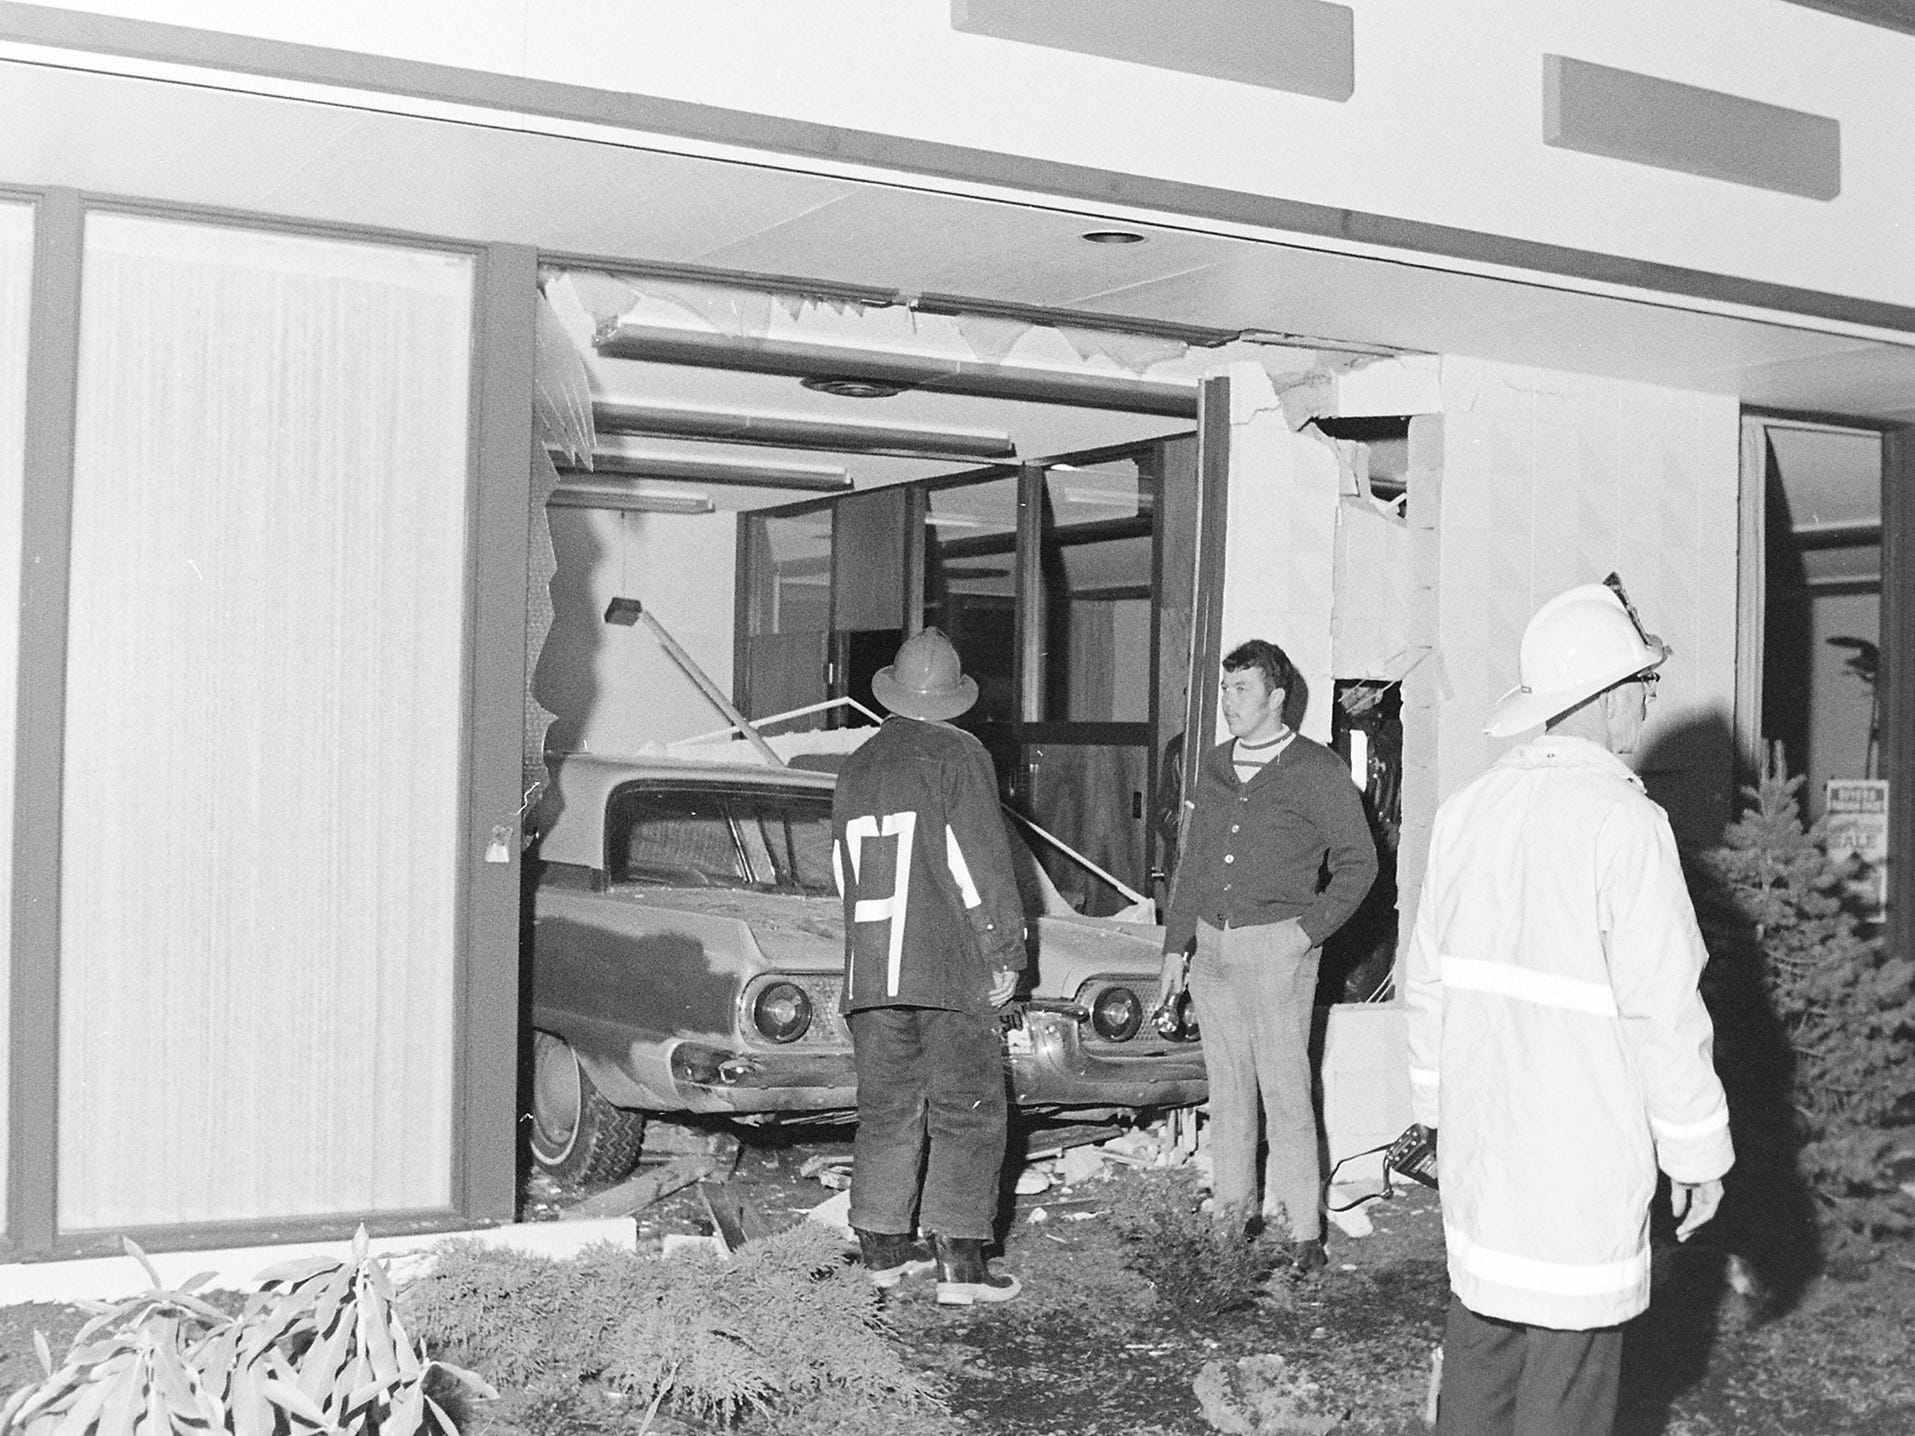 04/13/80